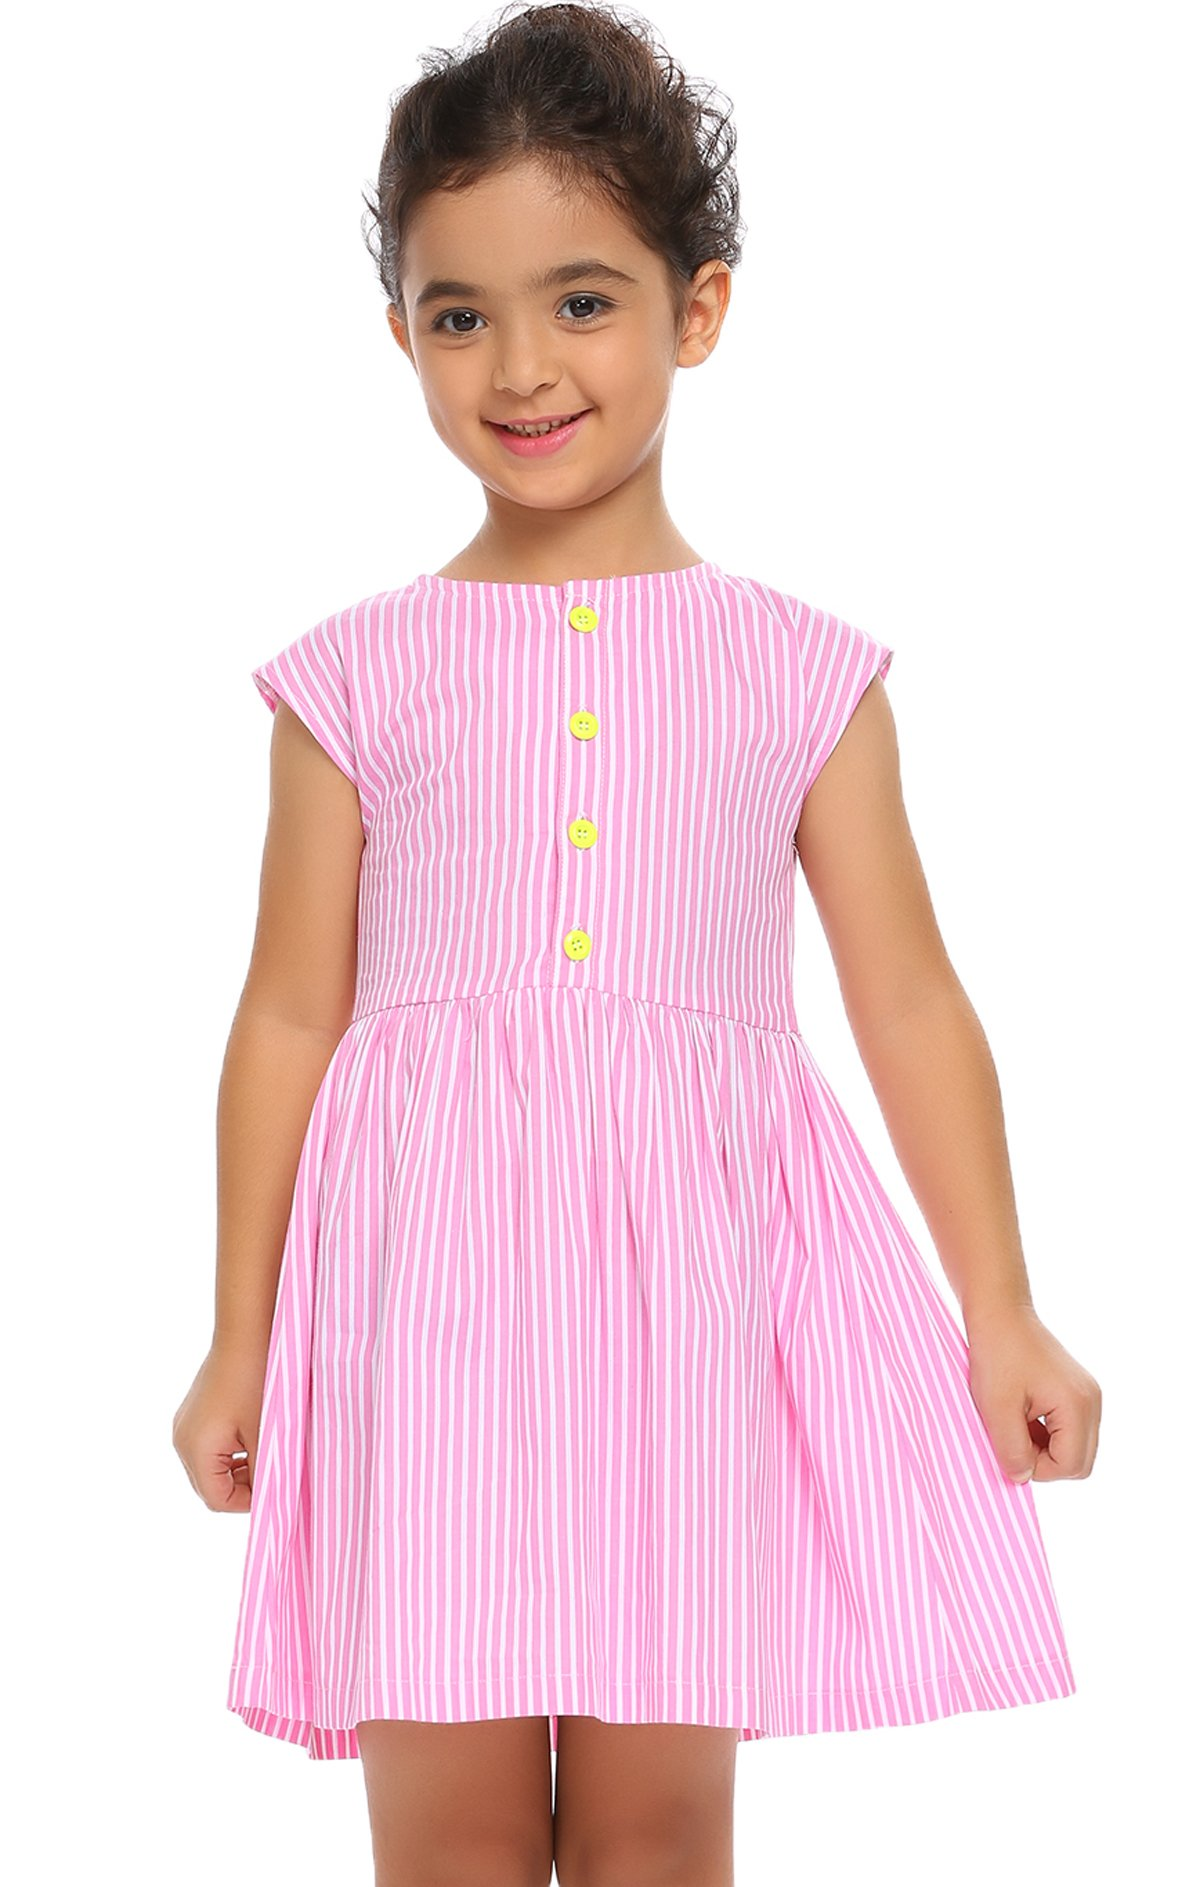 Arshiner Toddlers Little Girls Sleeveless Striped Casual Daily Dress